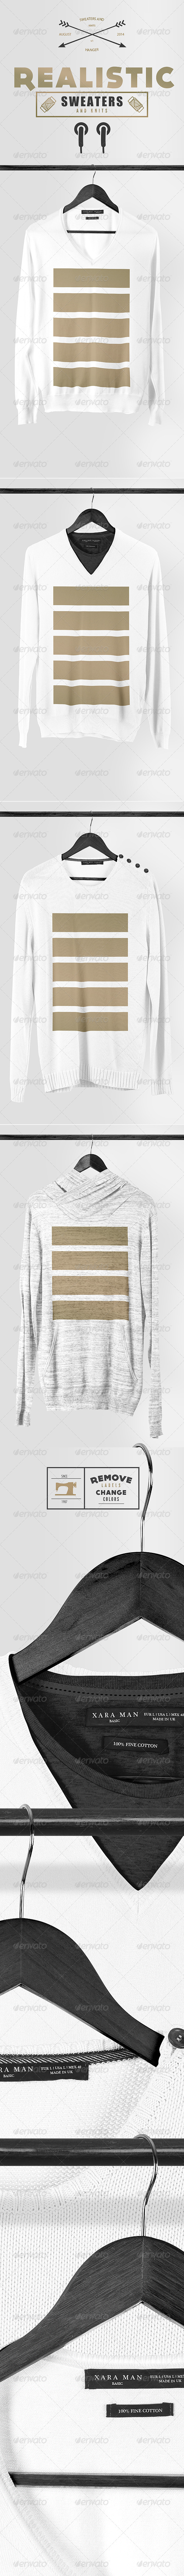 GraphicRiver Realistic Sweaters & Knits Mock-up Pack 8561366